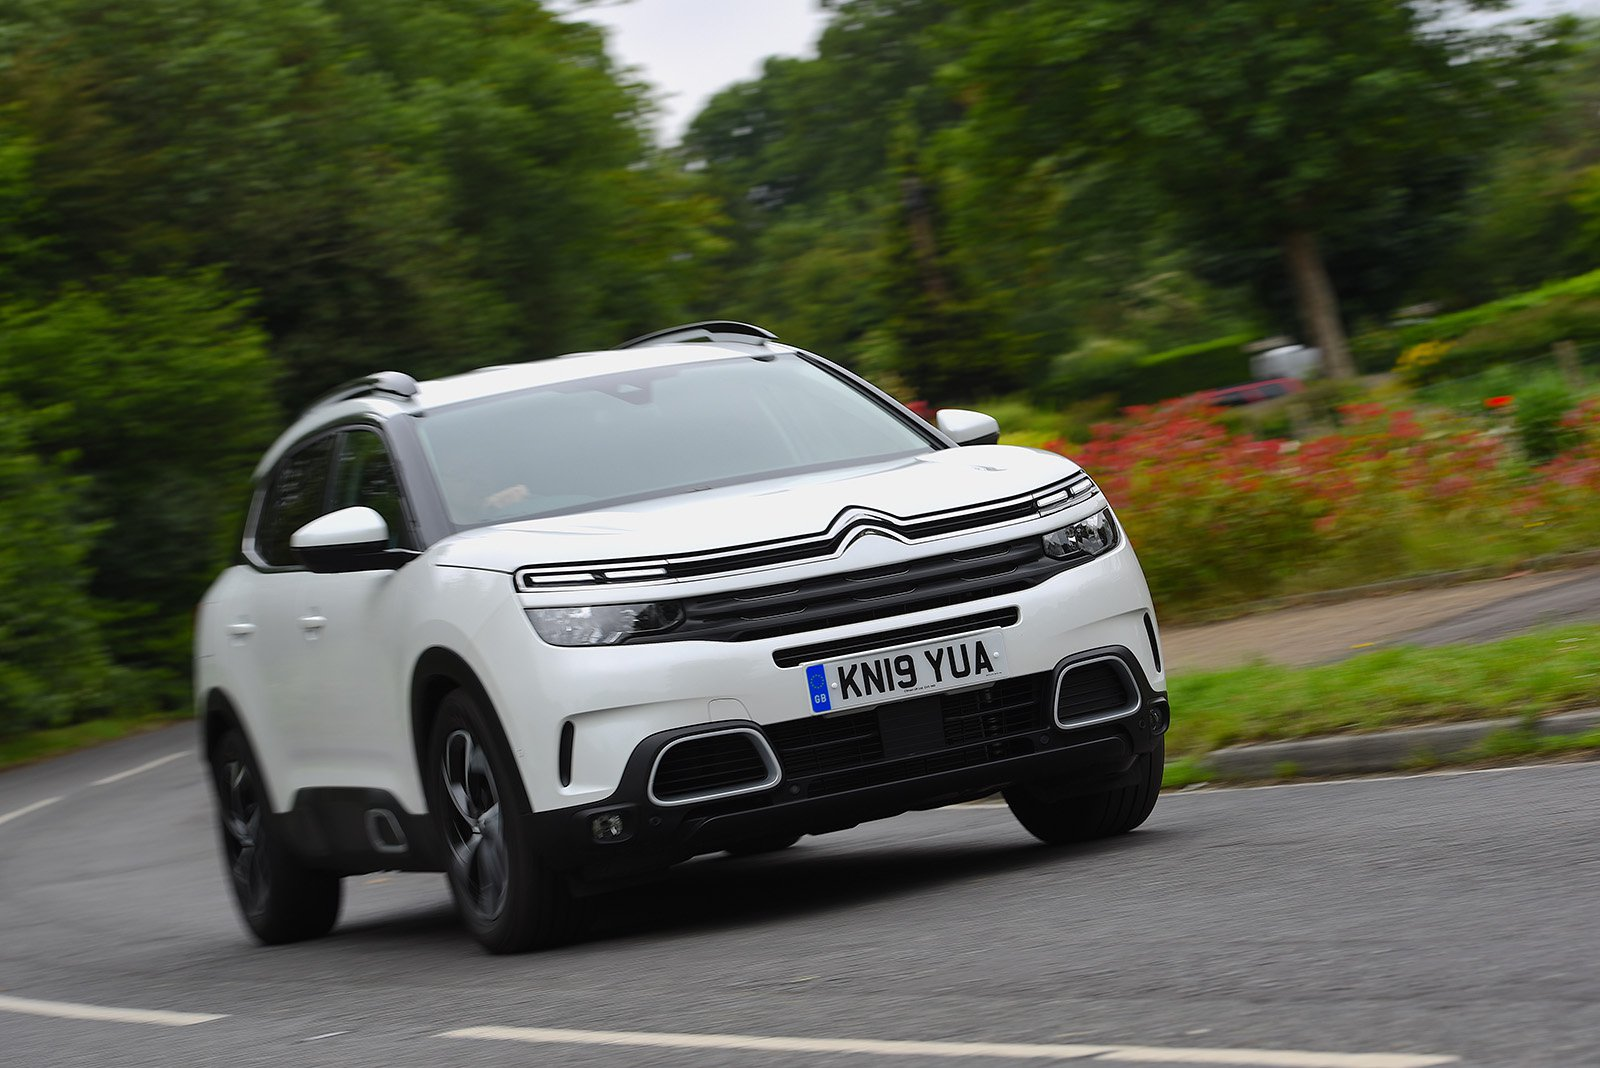 Citroën C5 Aircross long-term test review